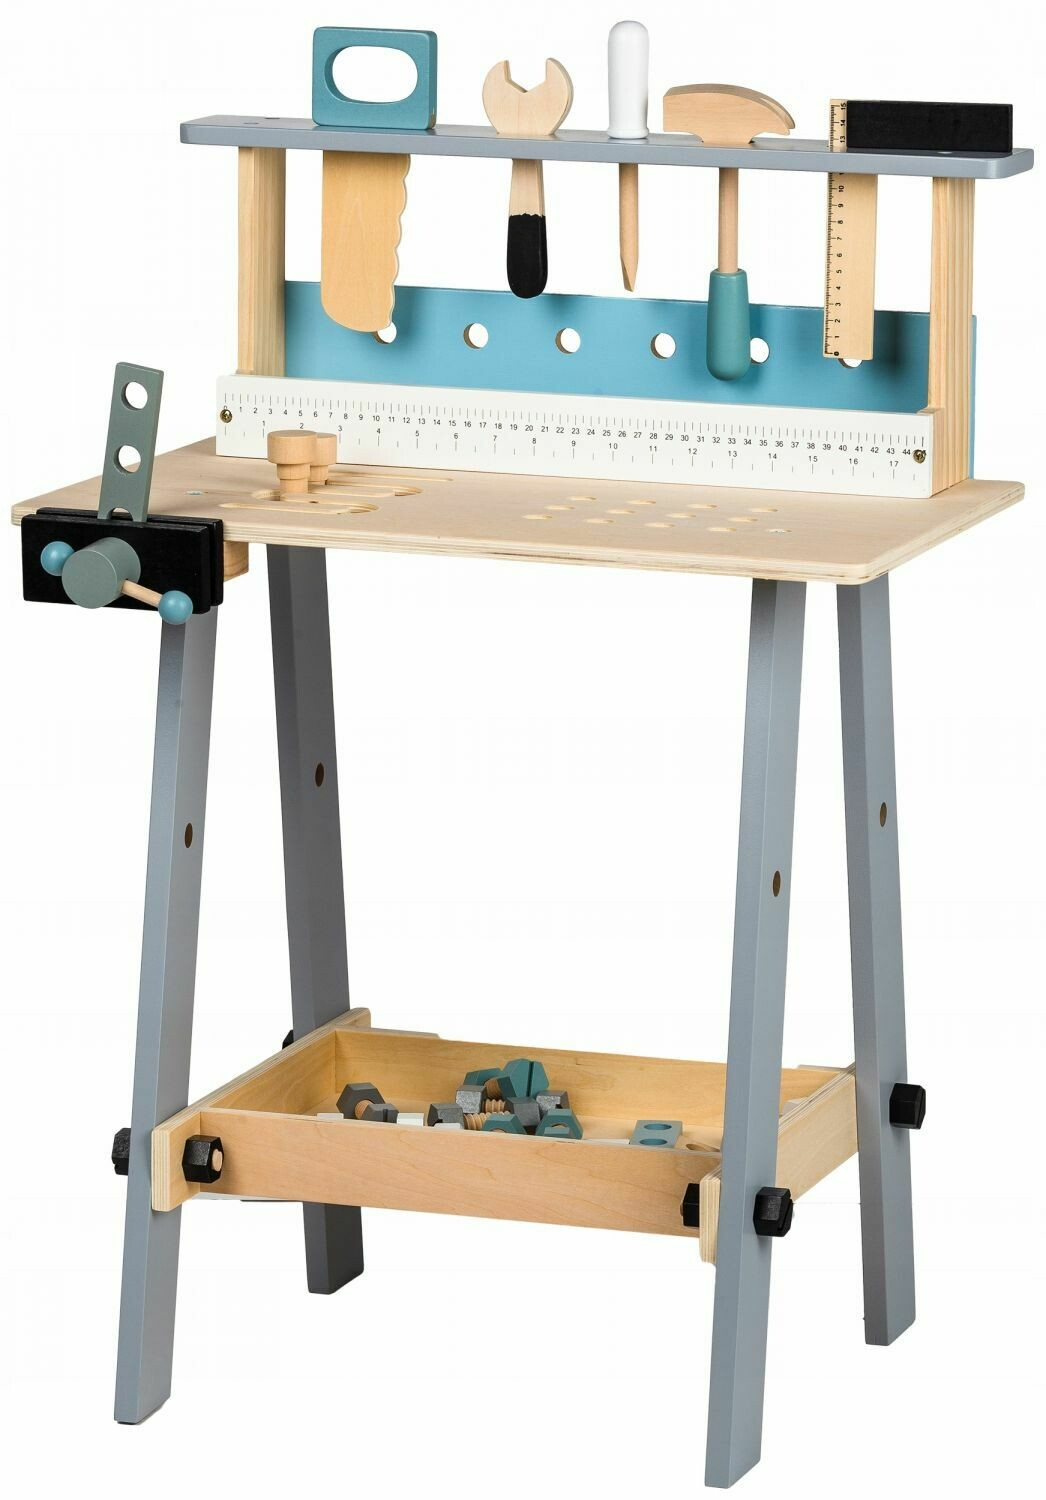 WOODEN WORKBENCH WITH TOOLS